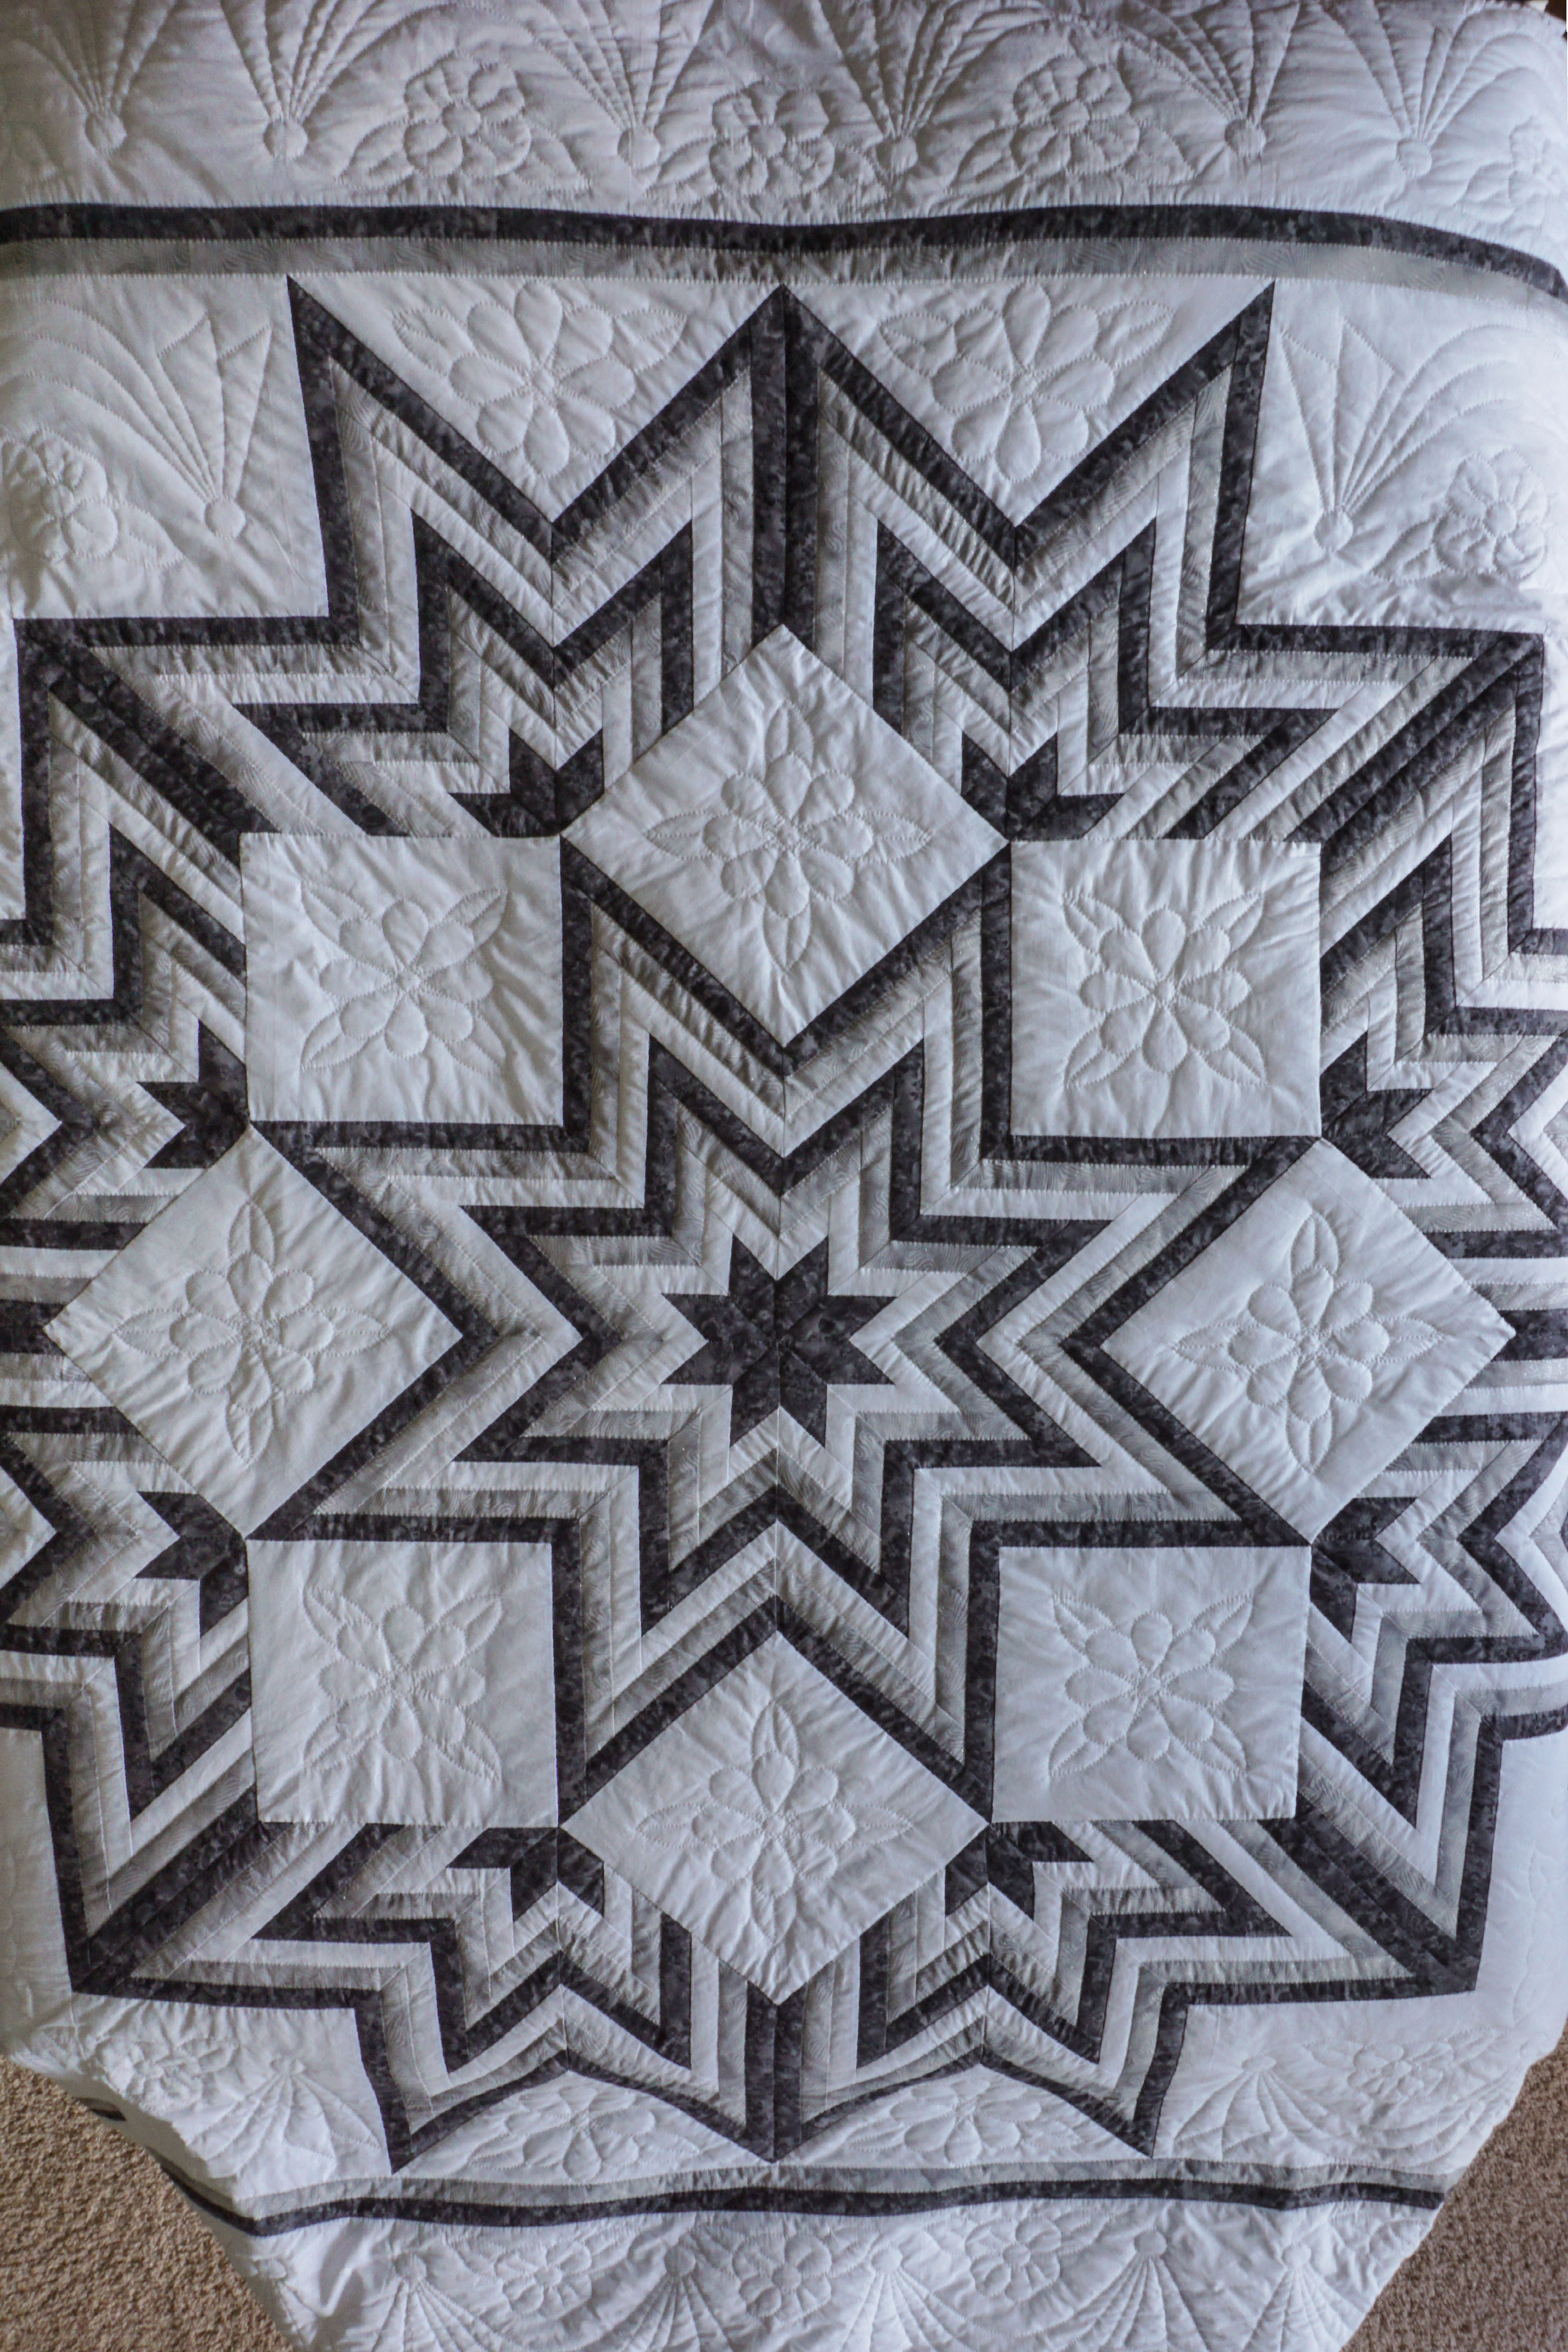 This year's quilt